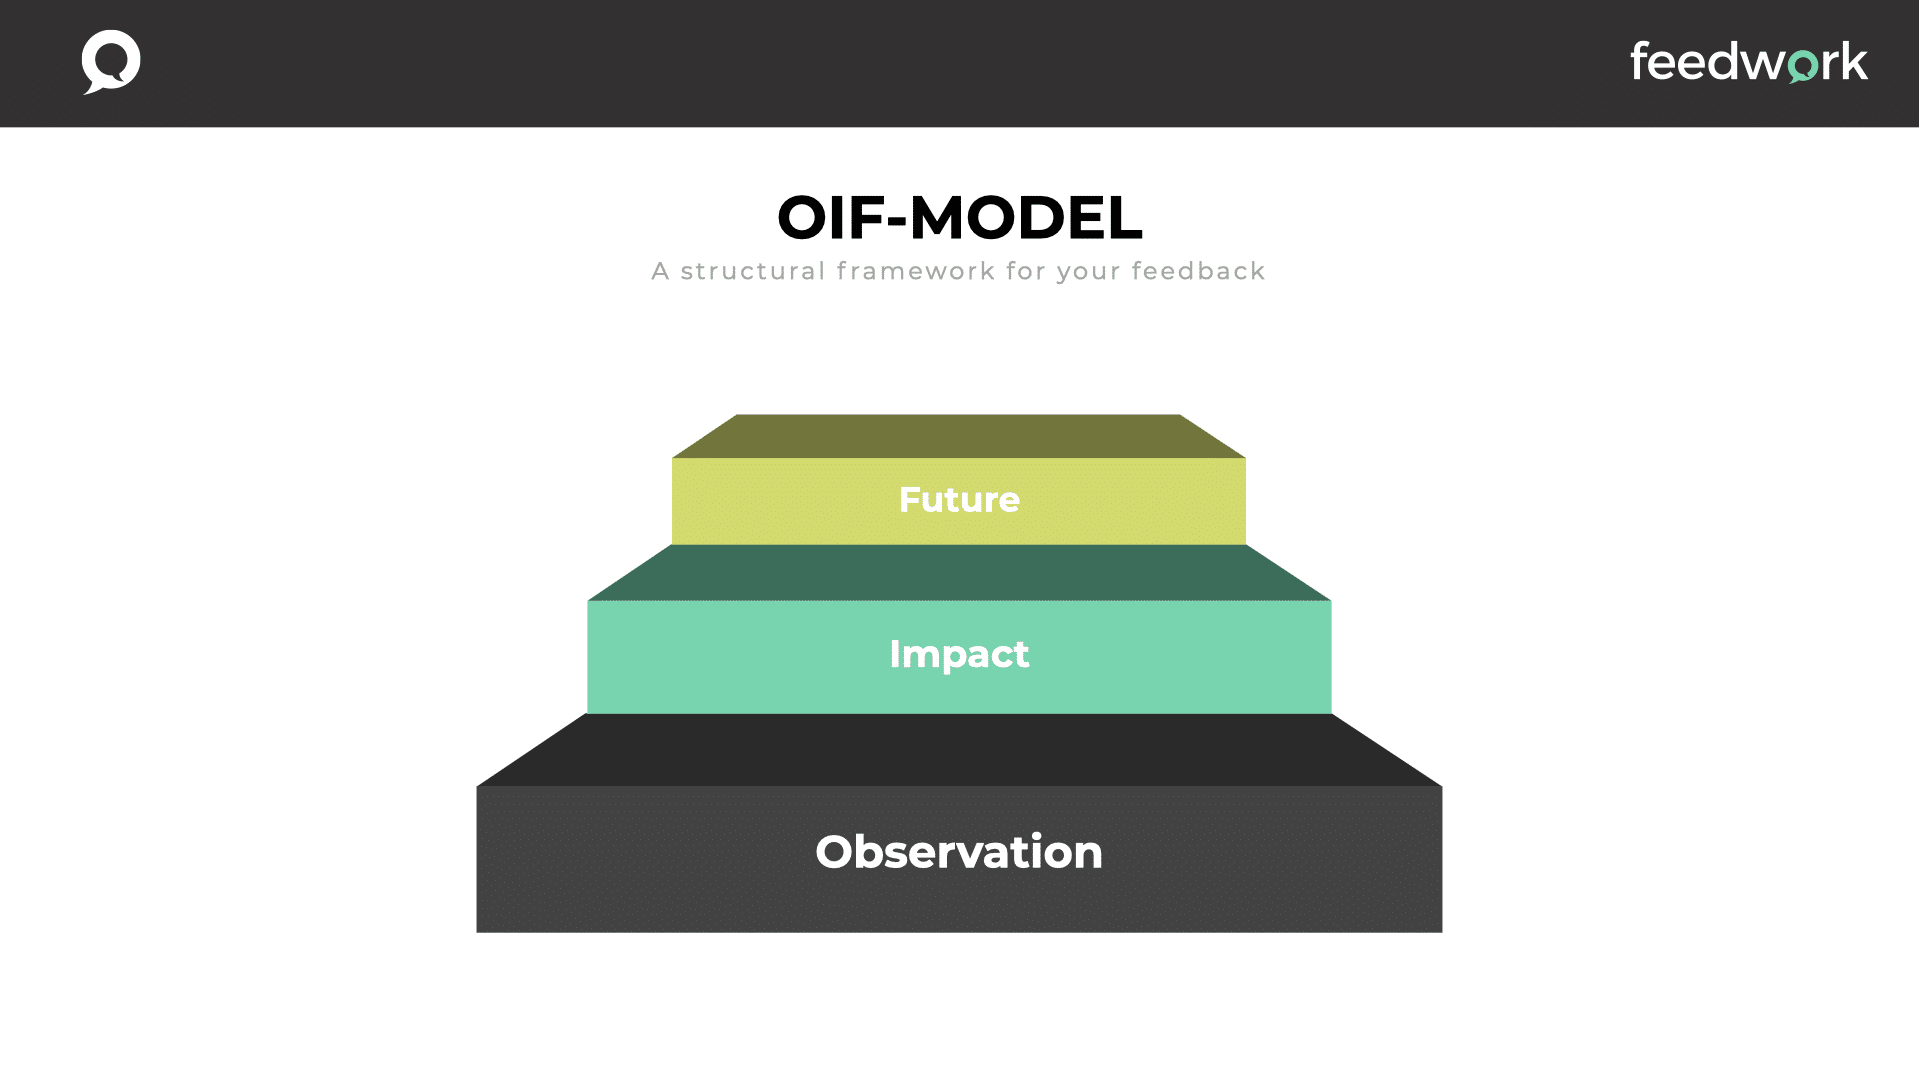 Feedback model OIF is a structural framework